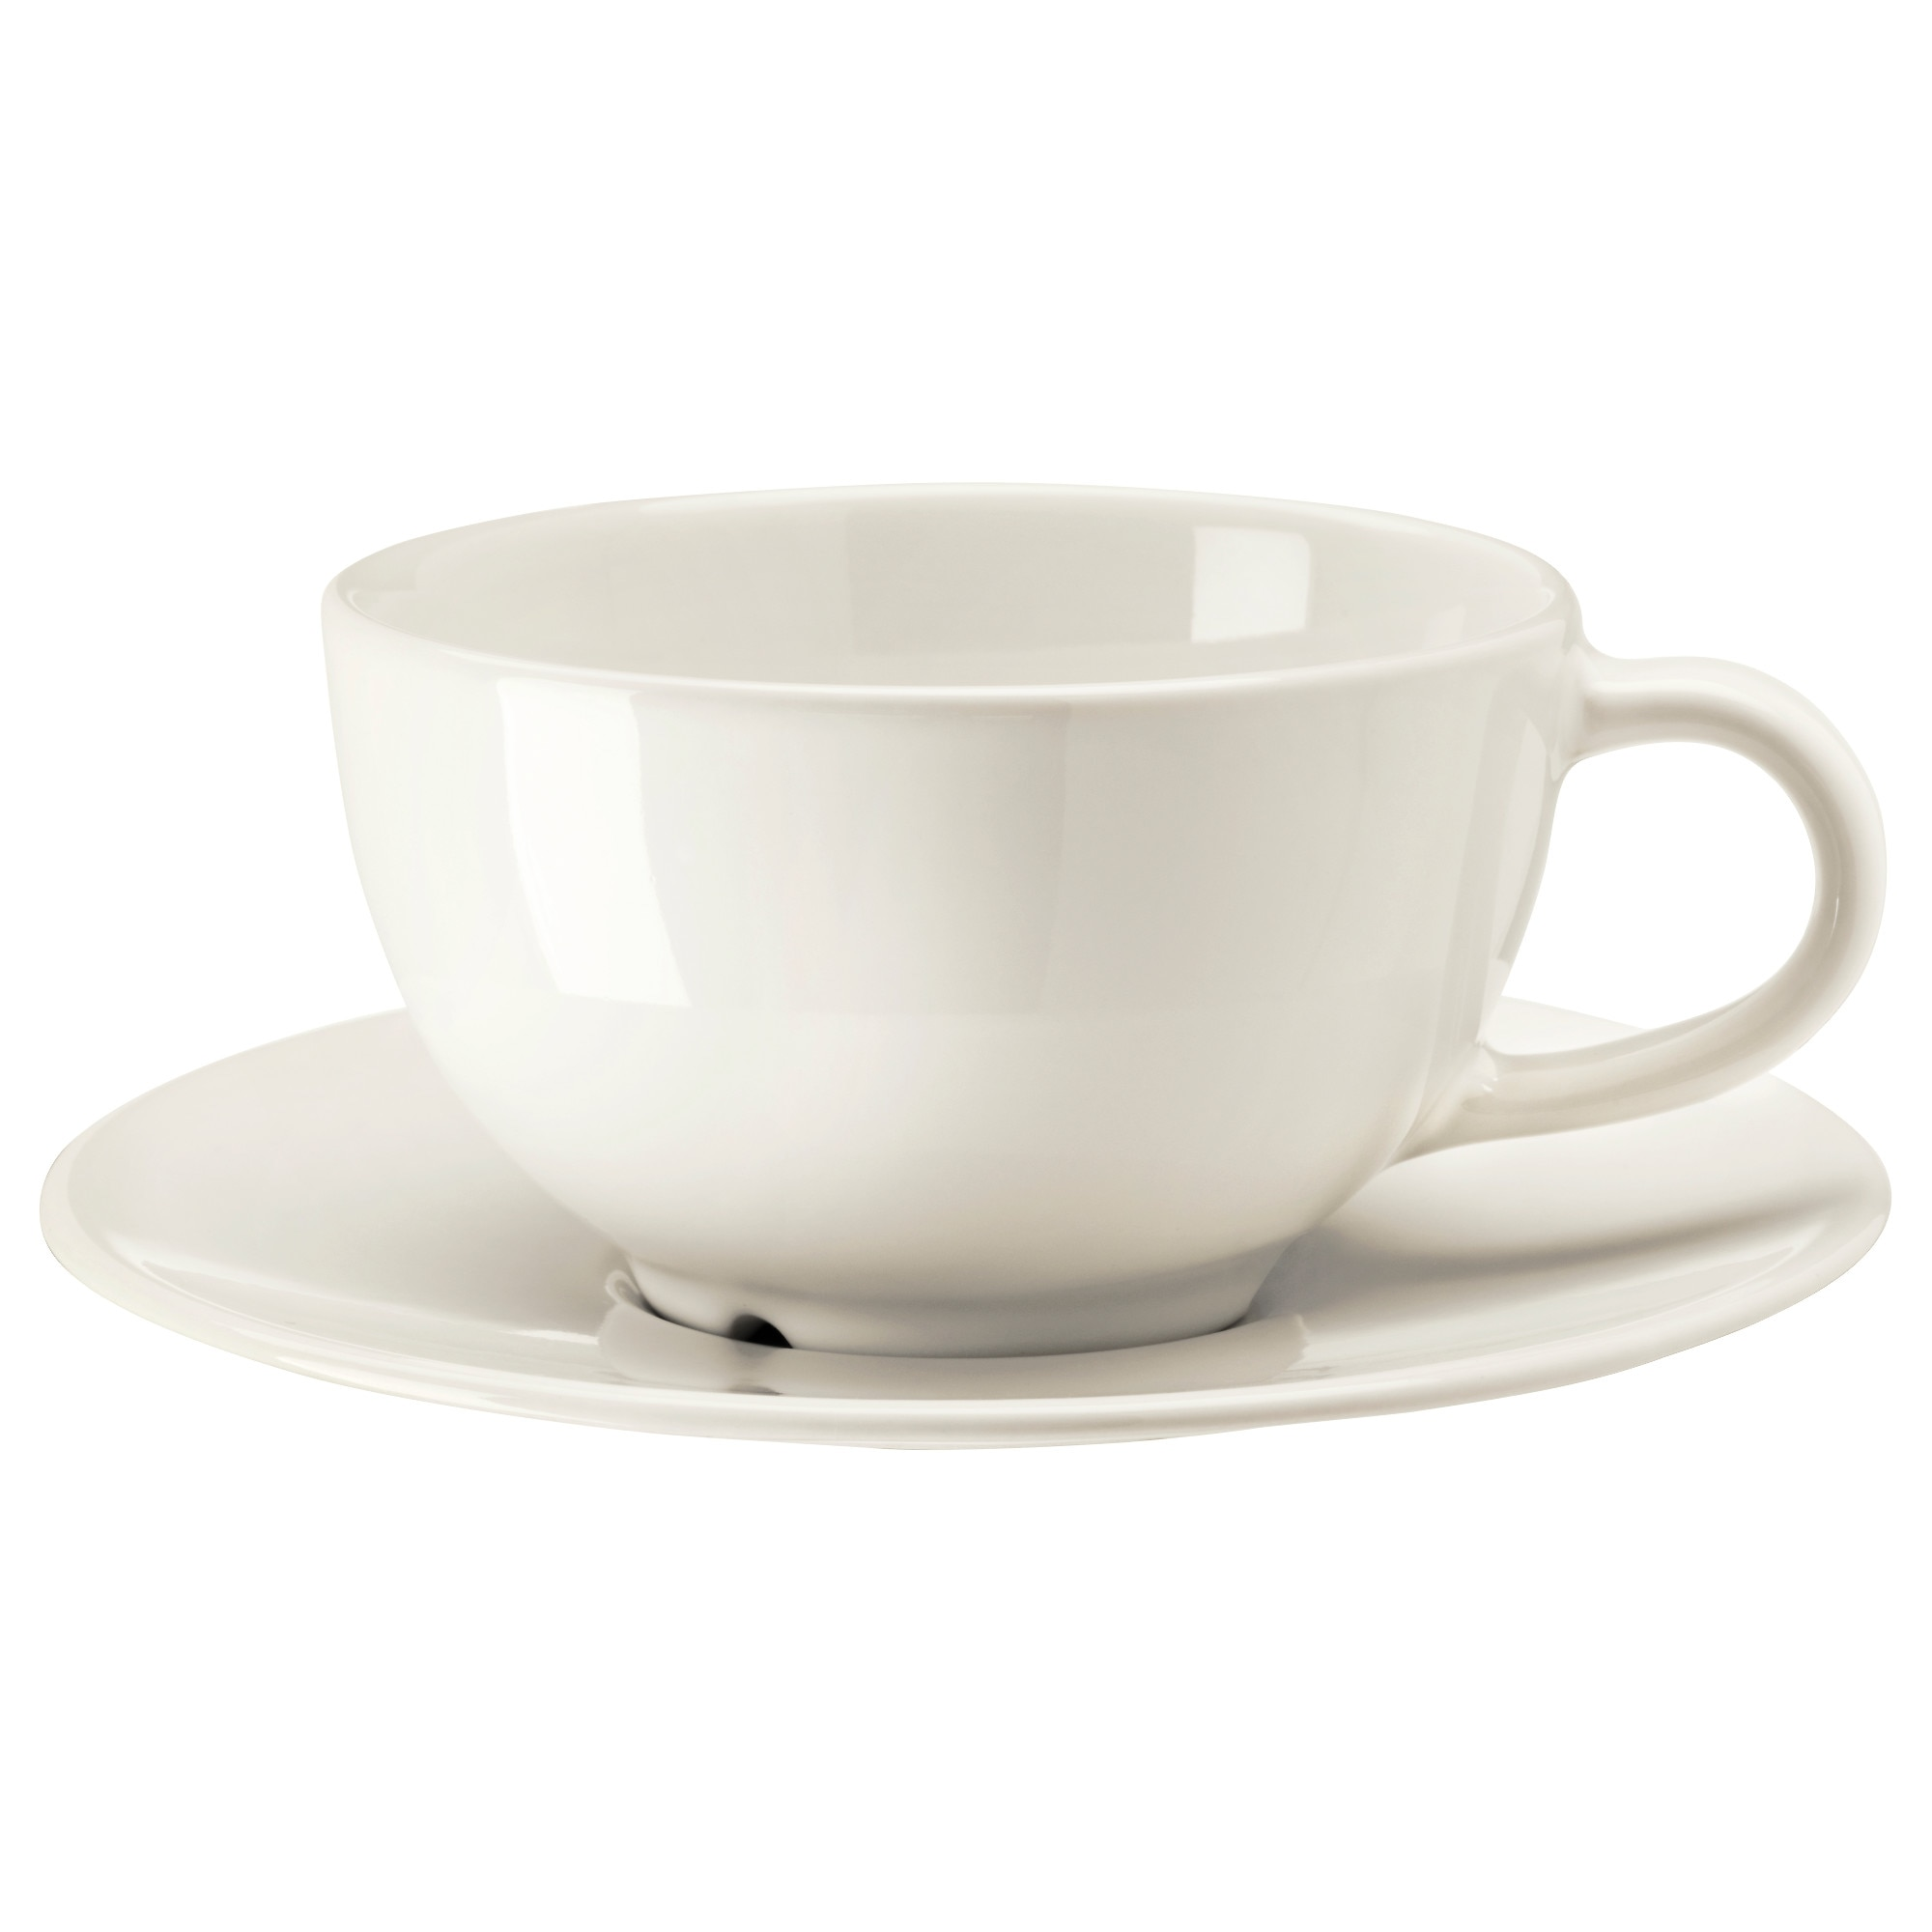 tea cup and saucer with tea images galleries with a bite. Black Bedroom Furniture Sets. Home Design Ideas